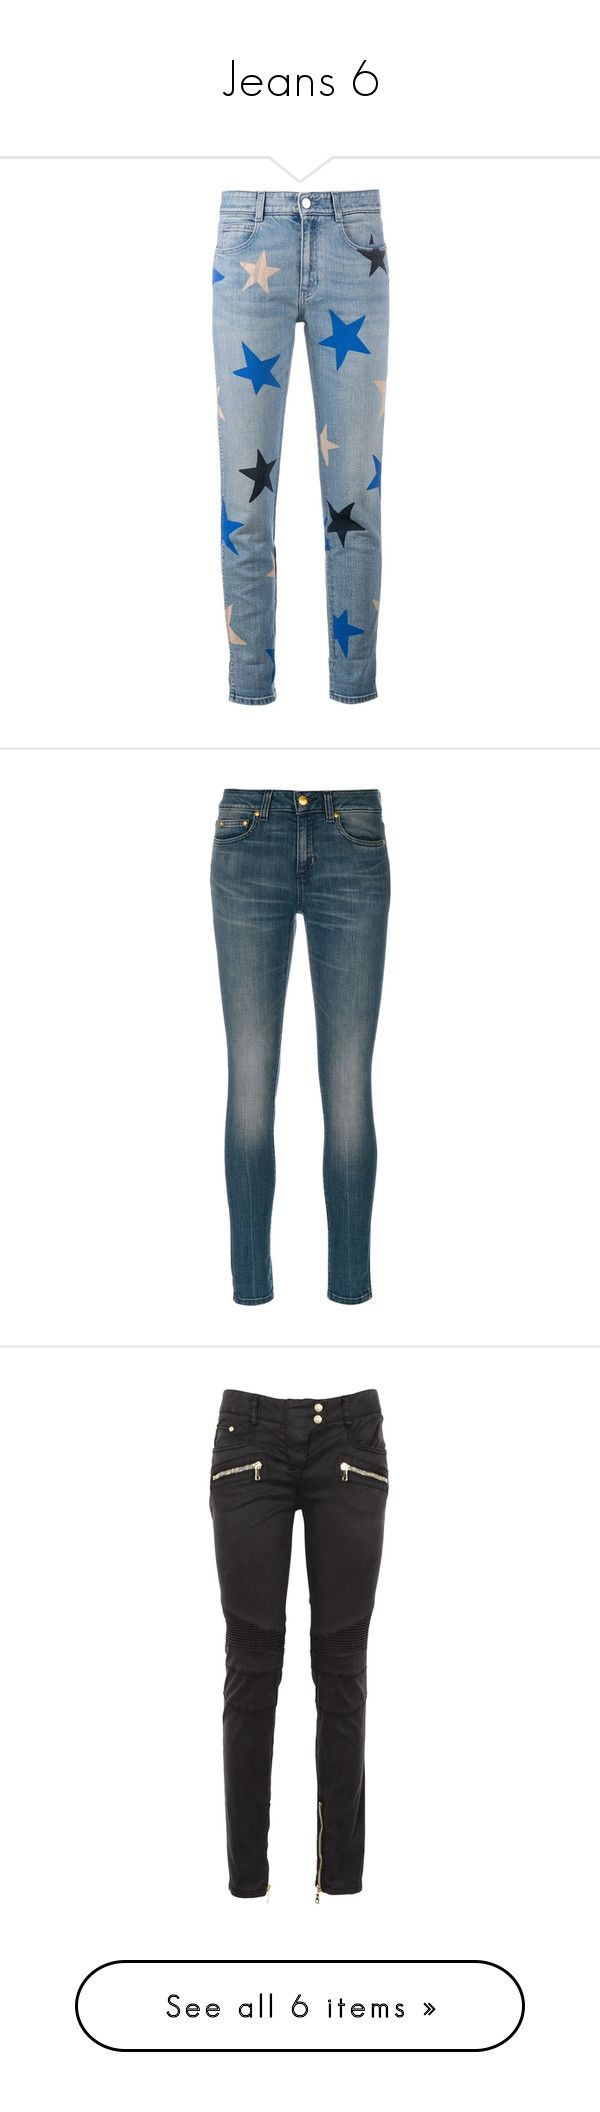 """Jeans 6"" by cupkatyk ❤ liked on Polyvore featuring jeans, blue, star print jeans, button-fly jeans, zip jeans, zipper jeans, star print skinny jeans, faded skinny jeans, skinny fit denim jeans and faded jeans"